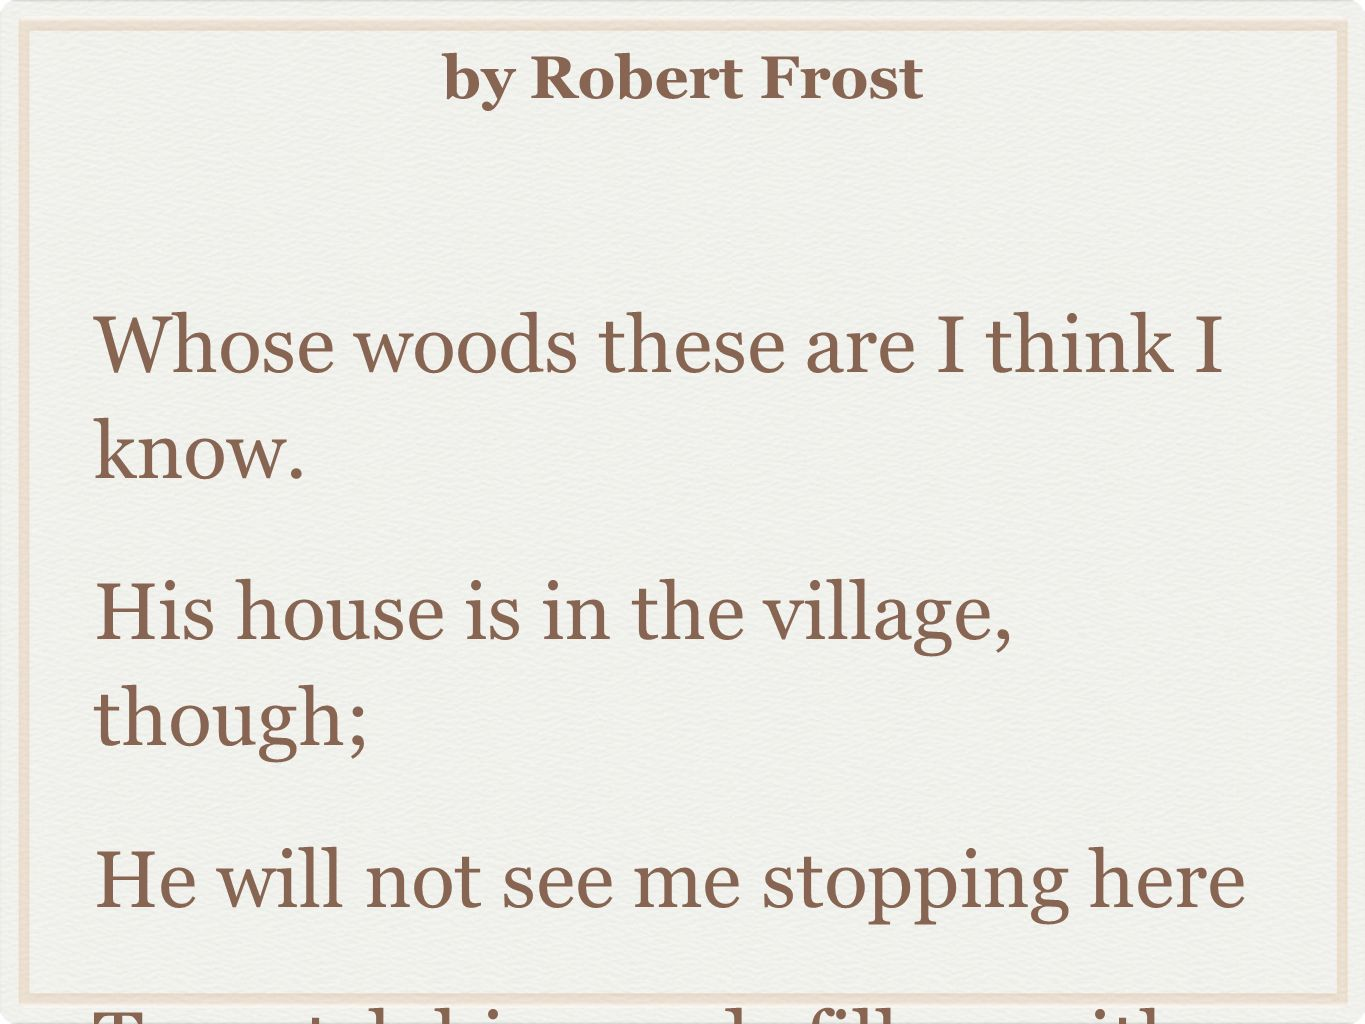 stopping by the woods on a snowy evening rhyme scheme